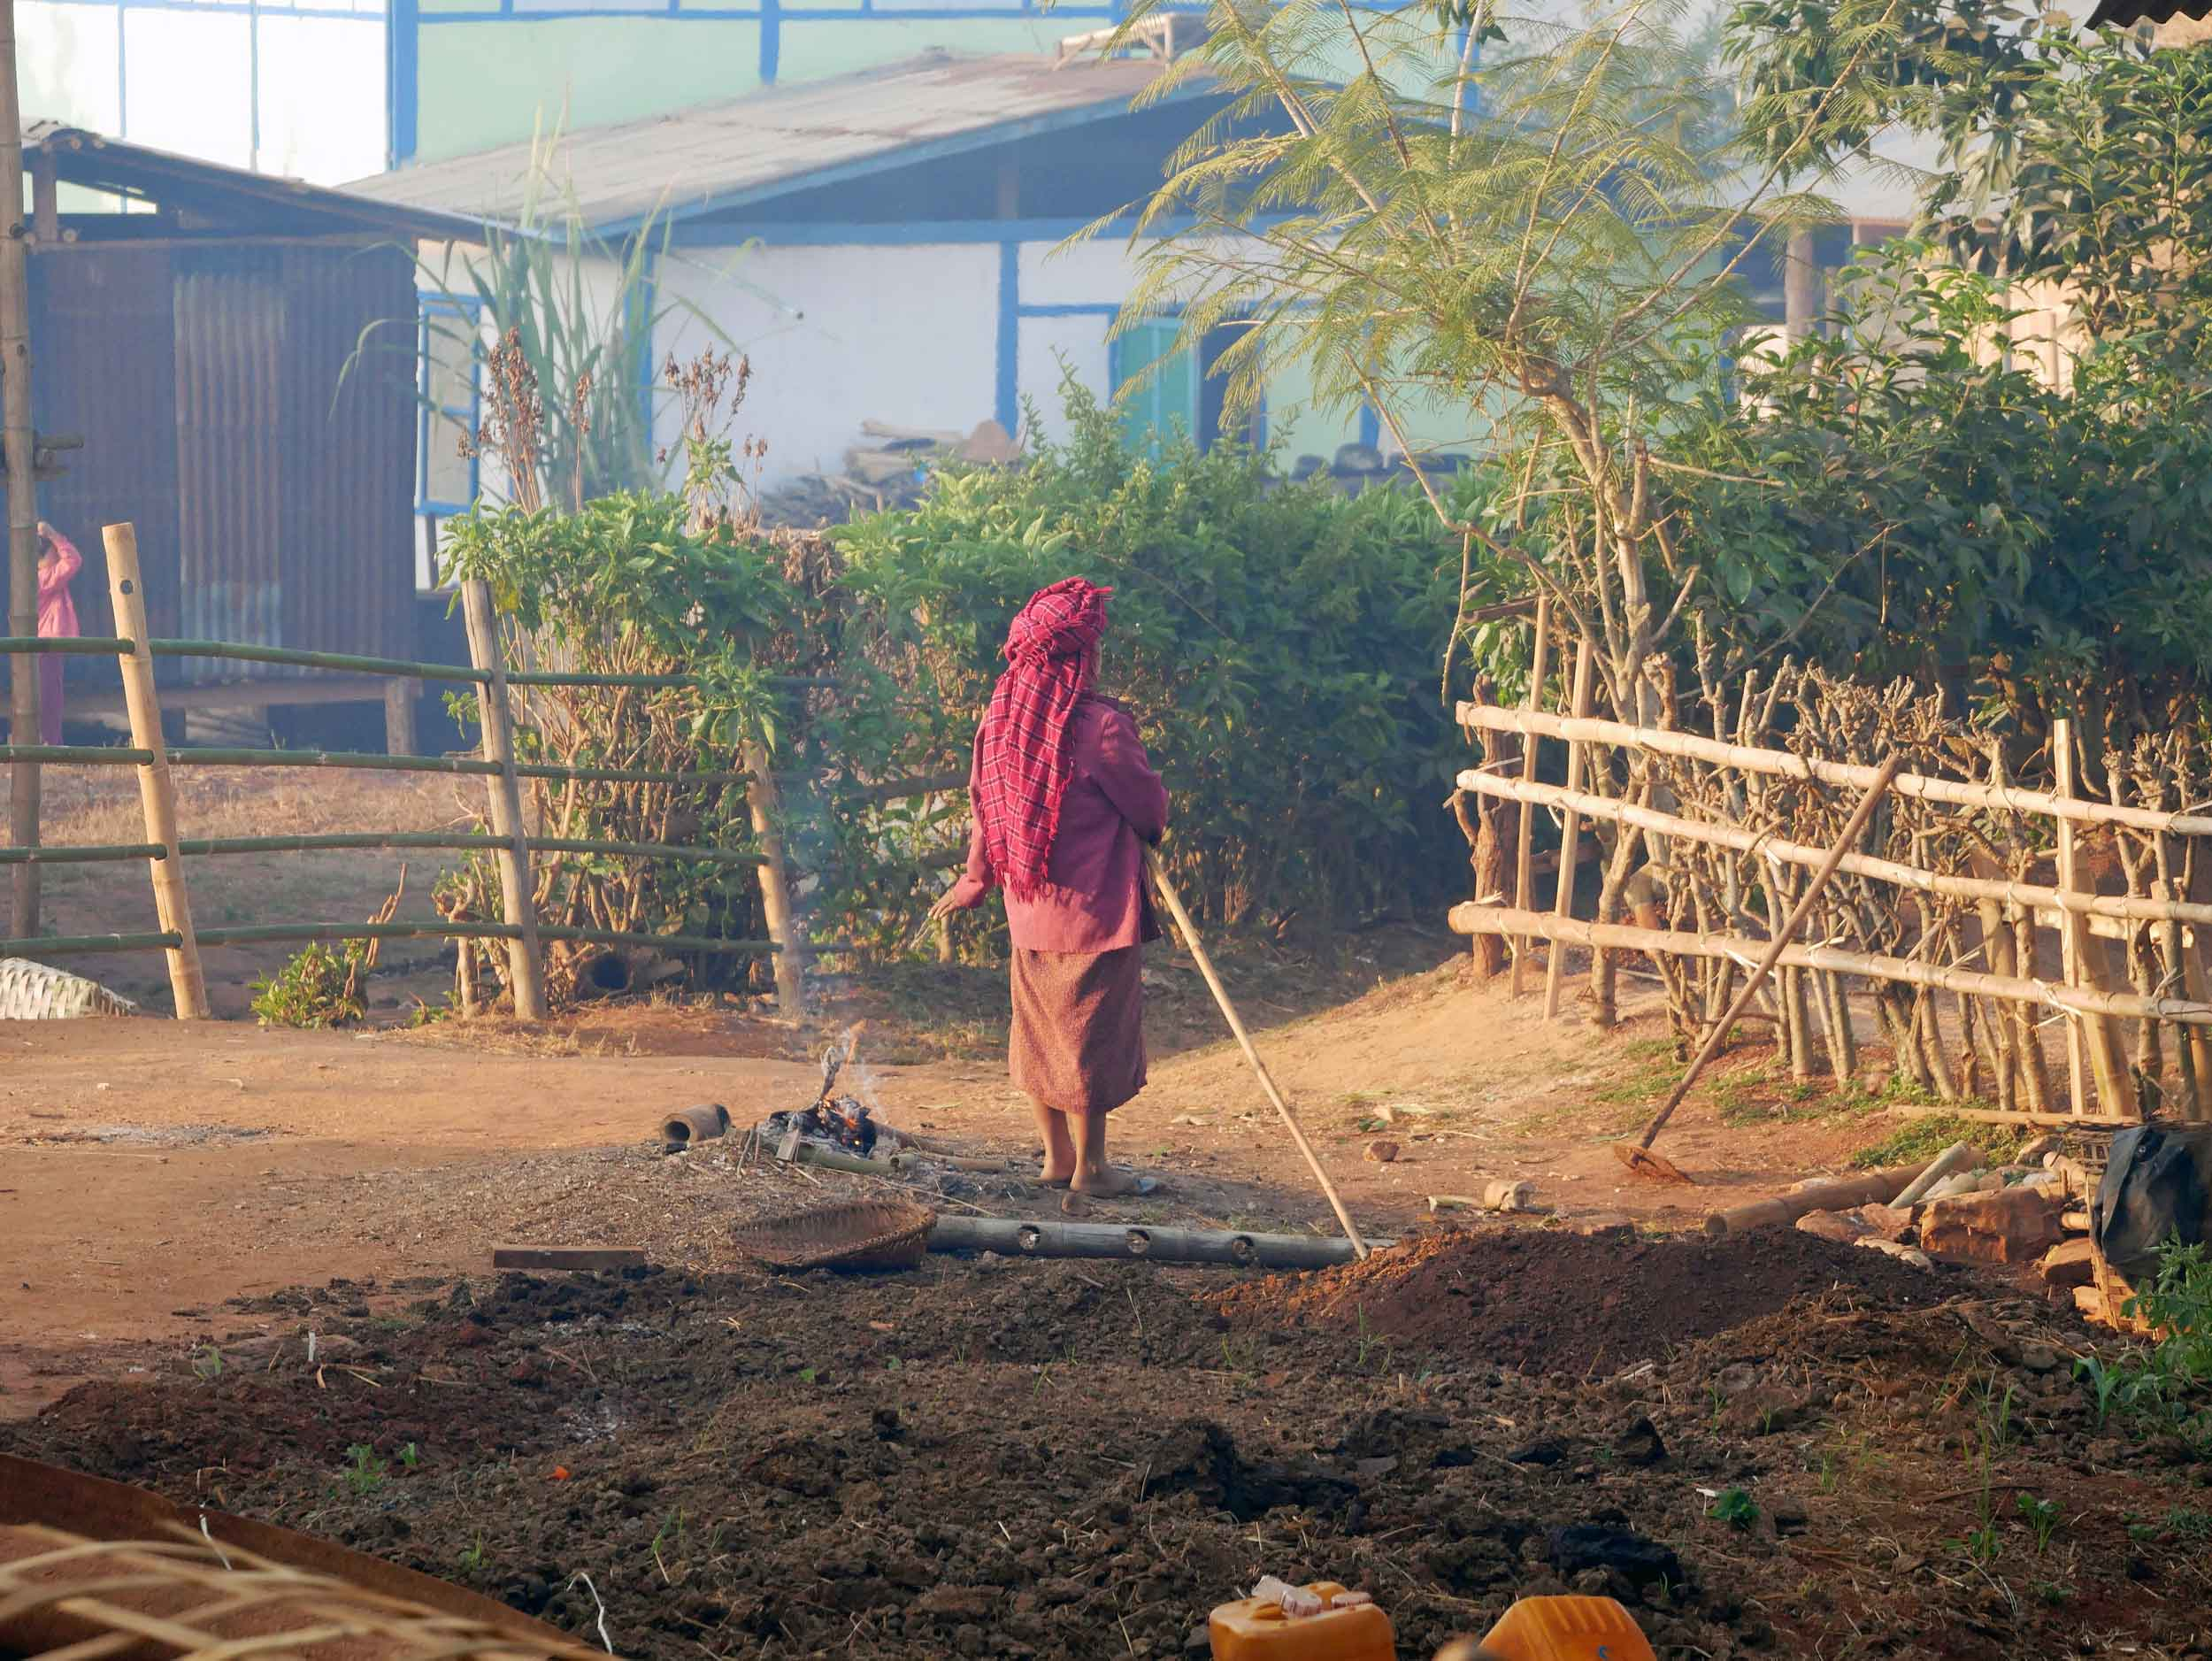 Morning life in the village as a women prepares a small fire for warmth (Feb 21).